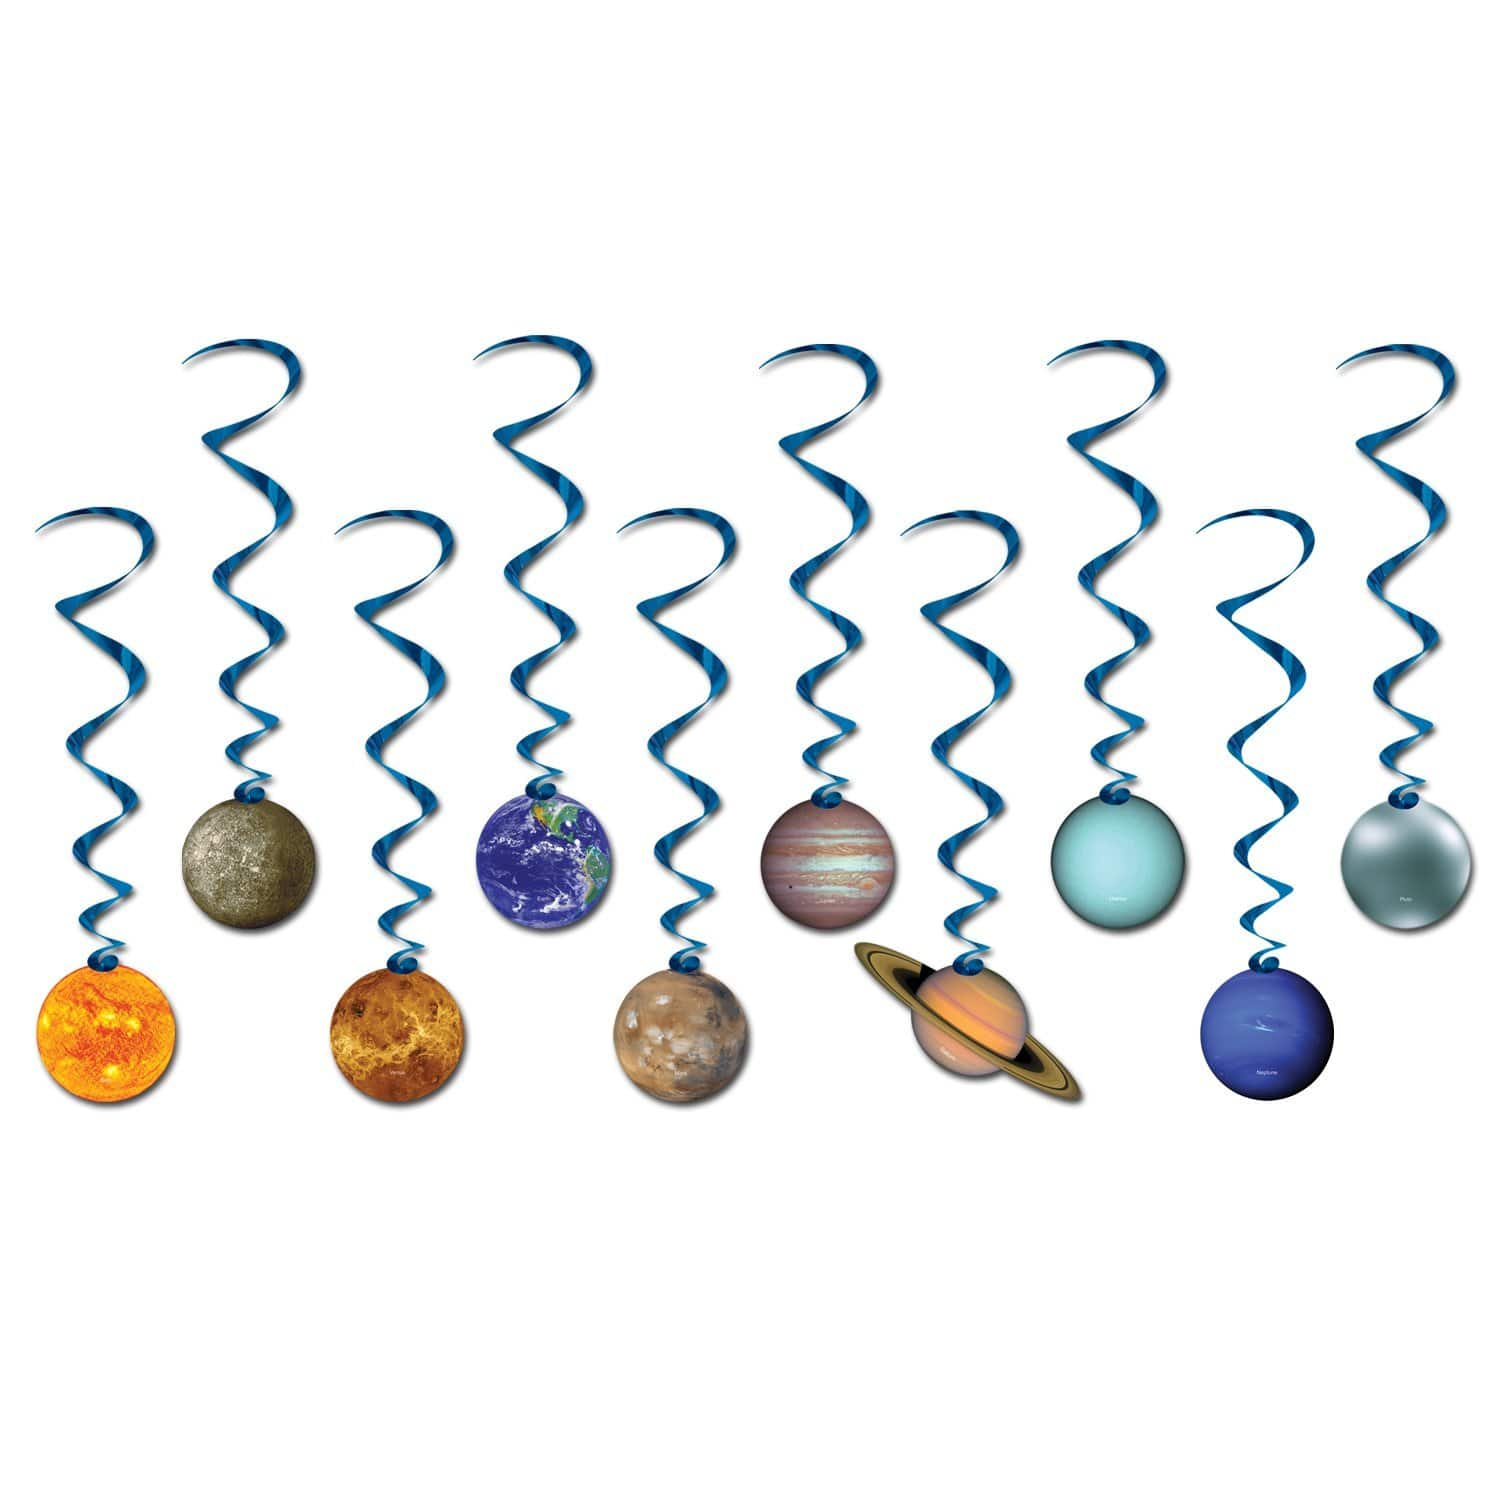 Solar System Whirls (10/package) for reduced price $6.20 @amazon